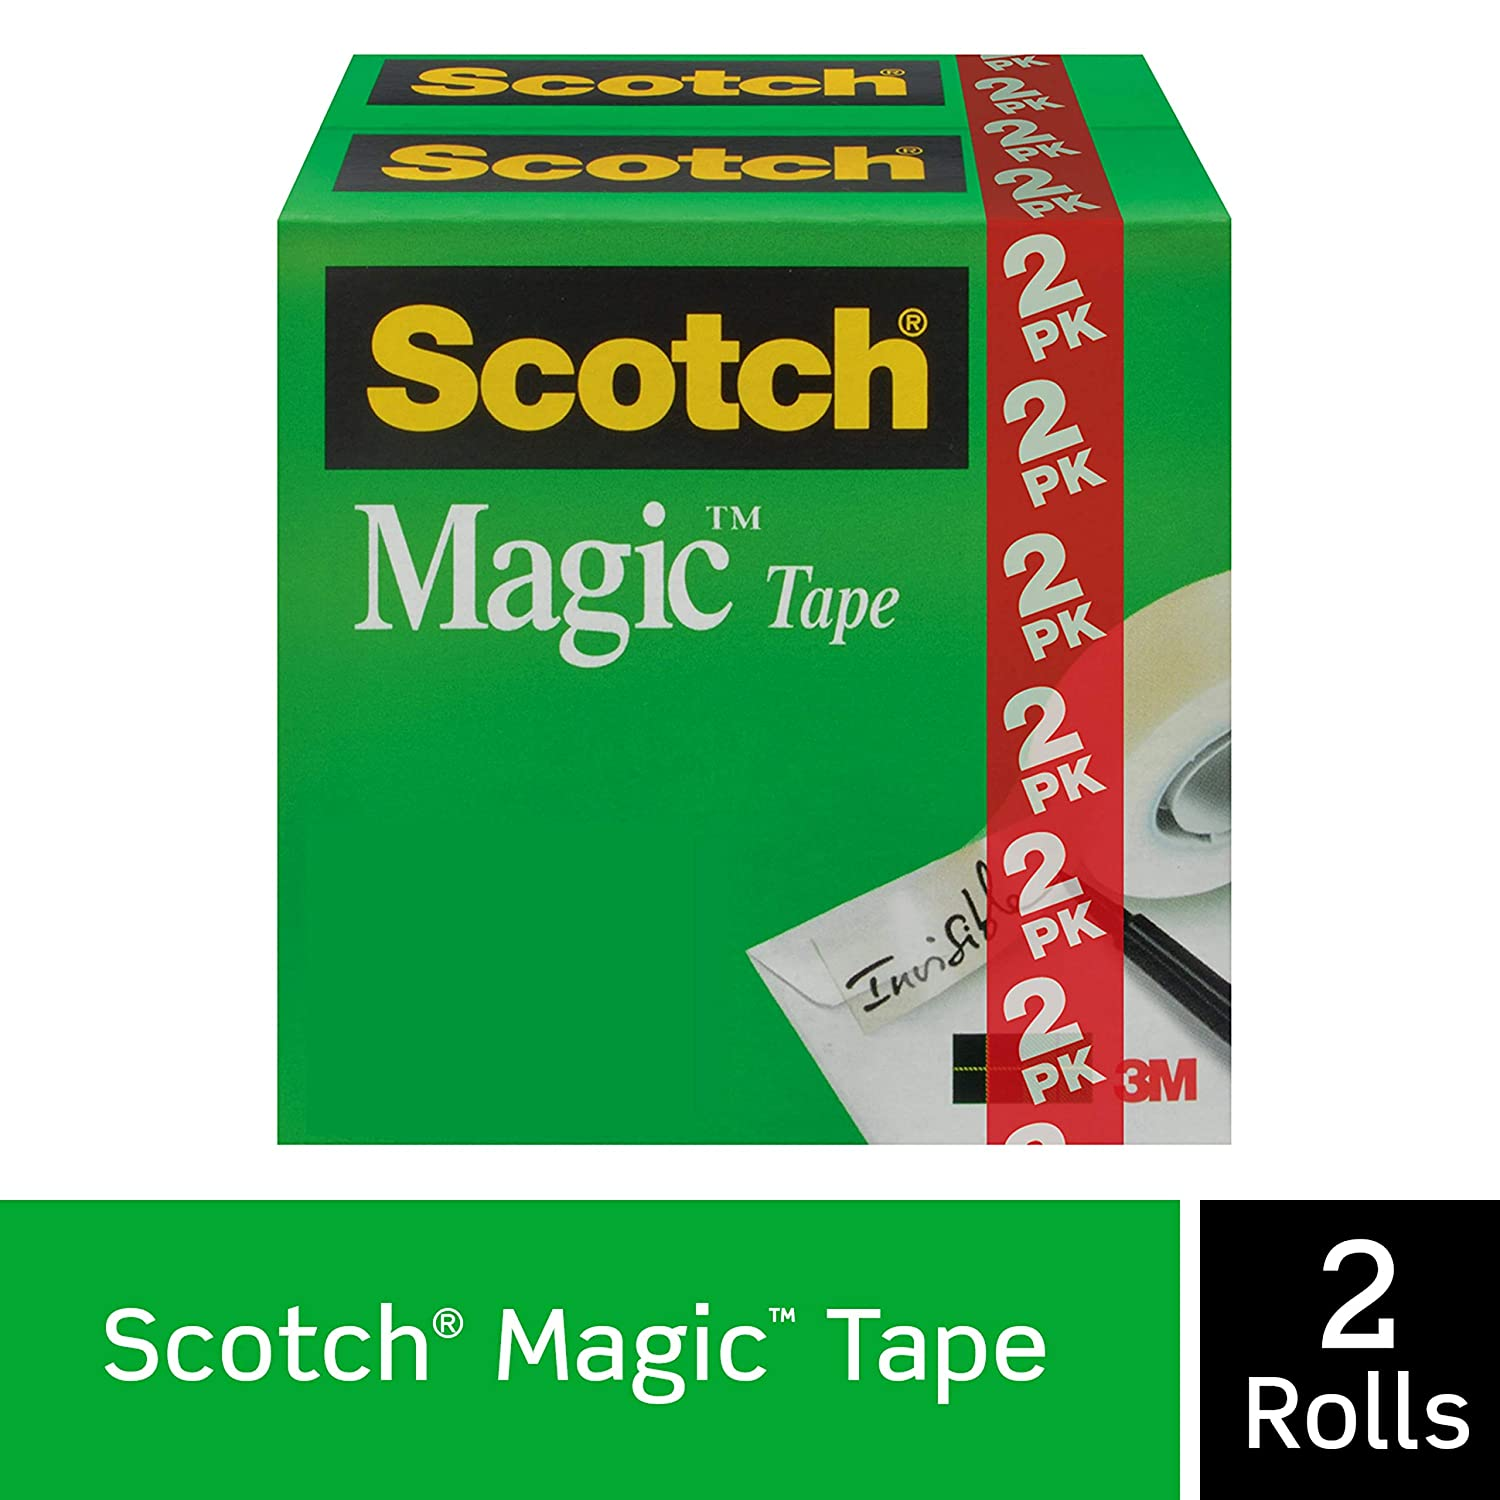 Scotch Brand Magic Tape, Numerous Applications, Engineered for Repairing, Great for Gift Wrapping, 3/4 x 1000 Inches, Boxed, 2 Rolls (810K2)